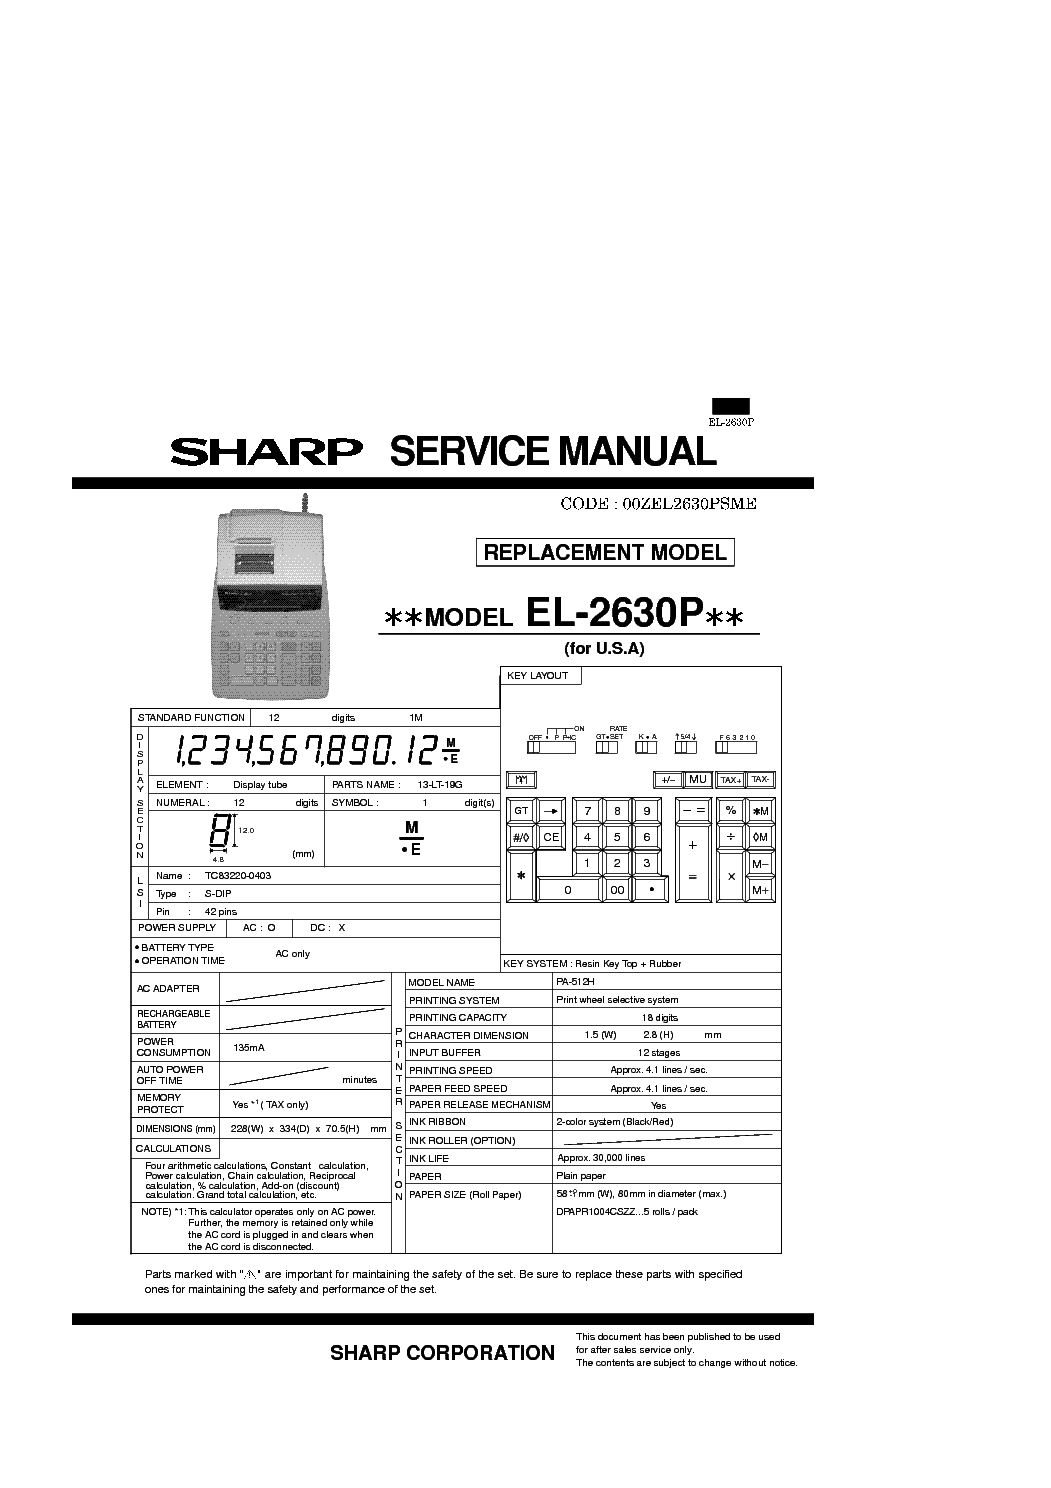 SHARP XE-A207-A23S XE-A407-A43S Service Manual download